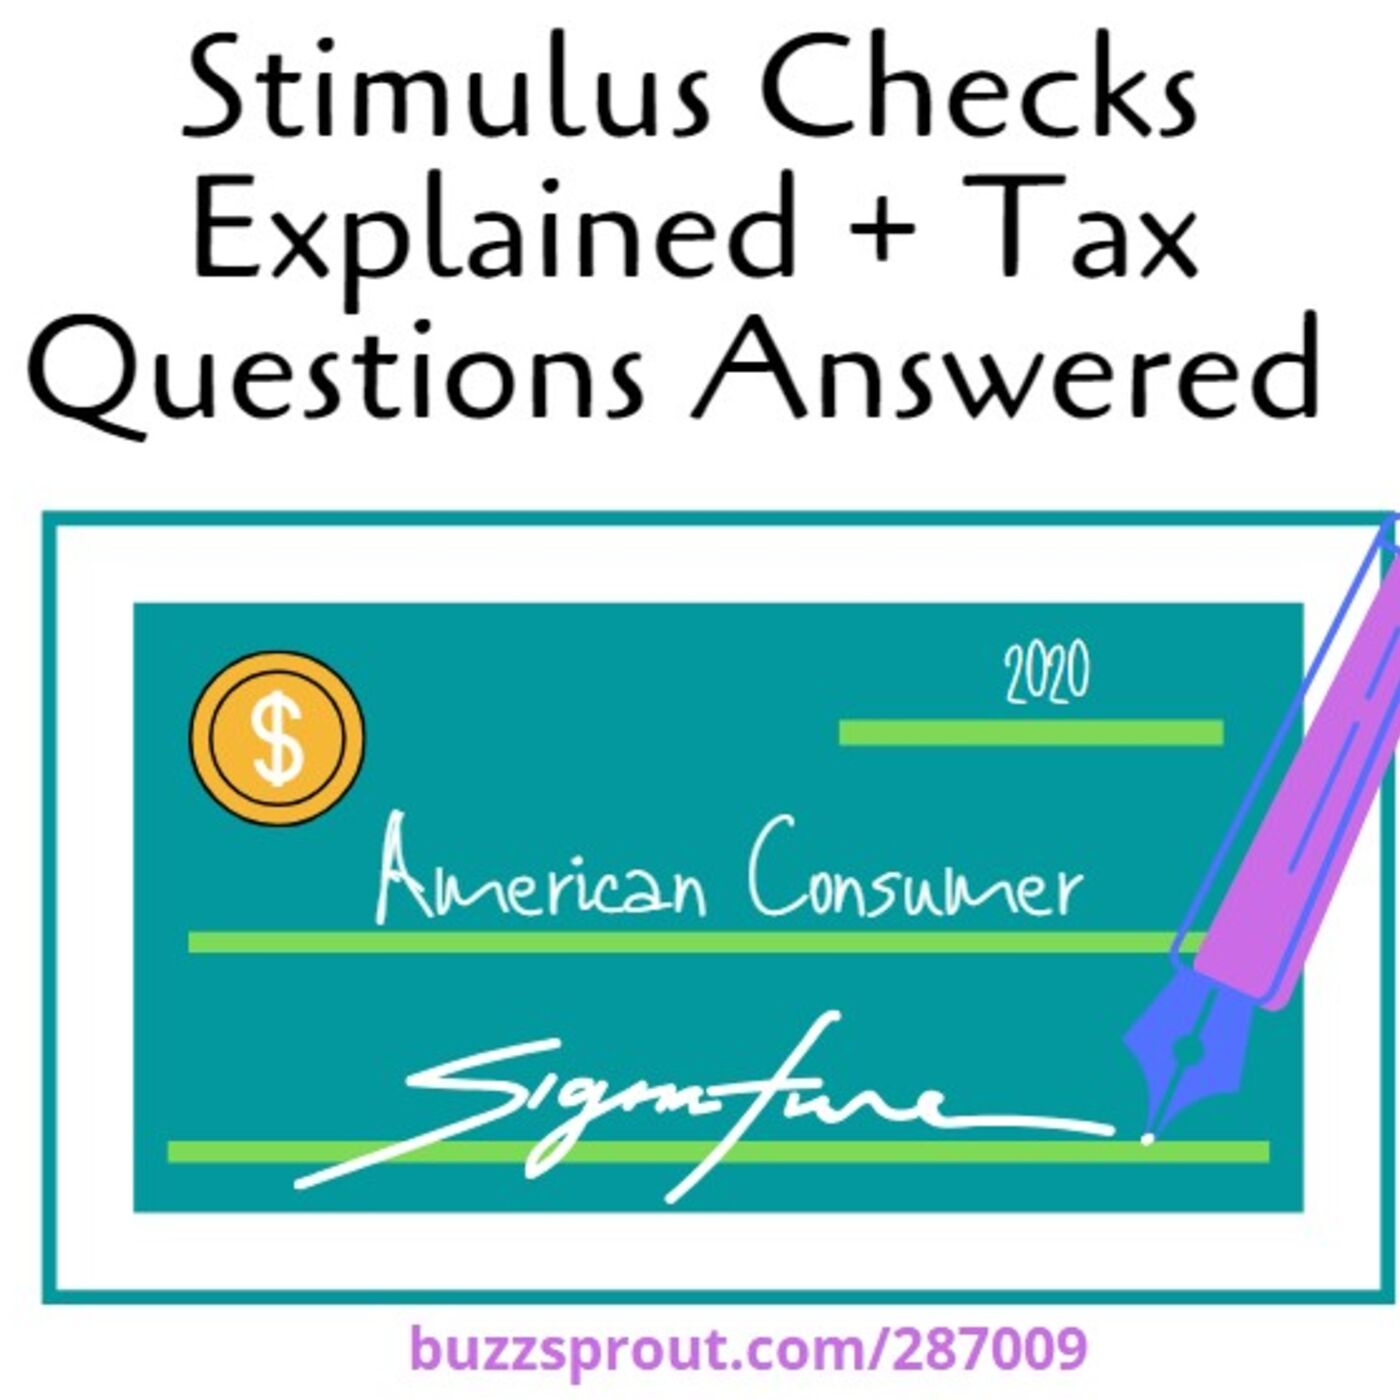 Stimulus Checks Explained + Tax Questions Answered